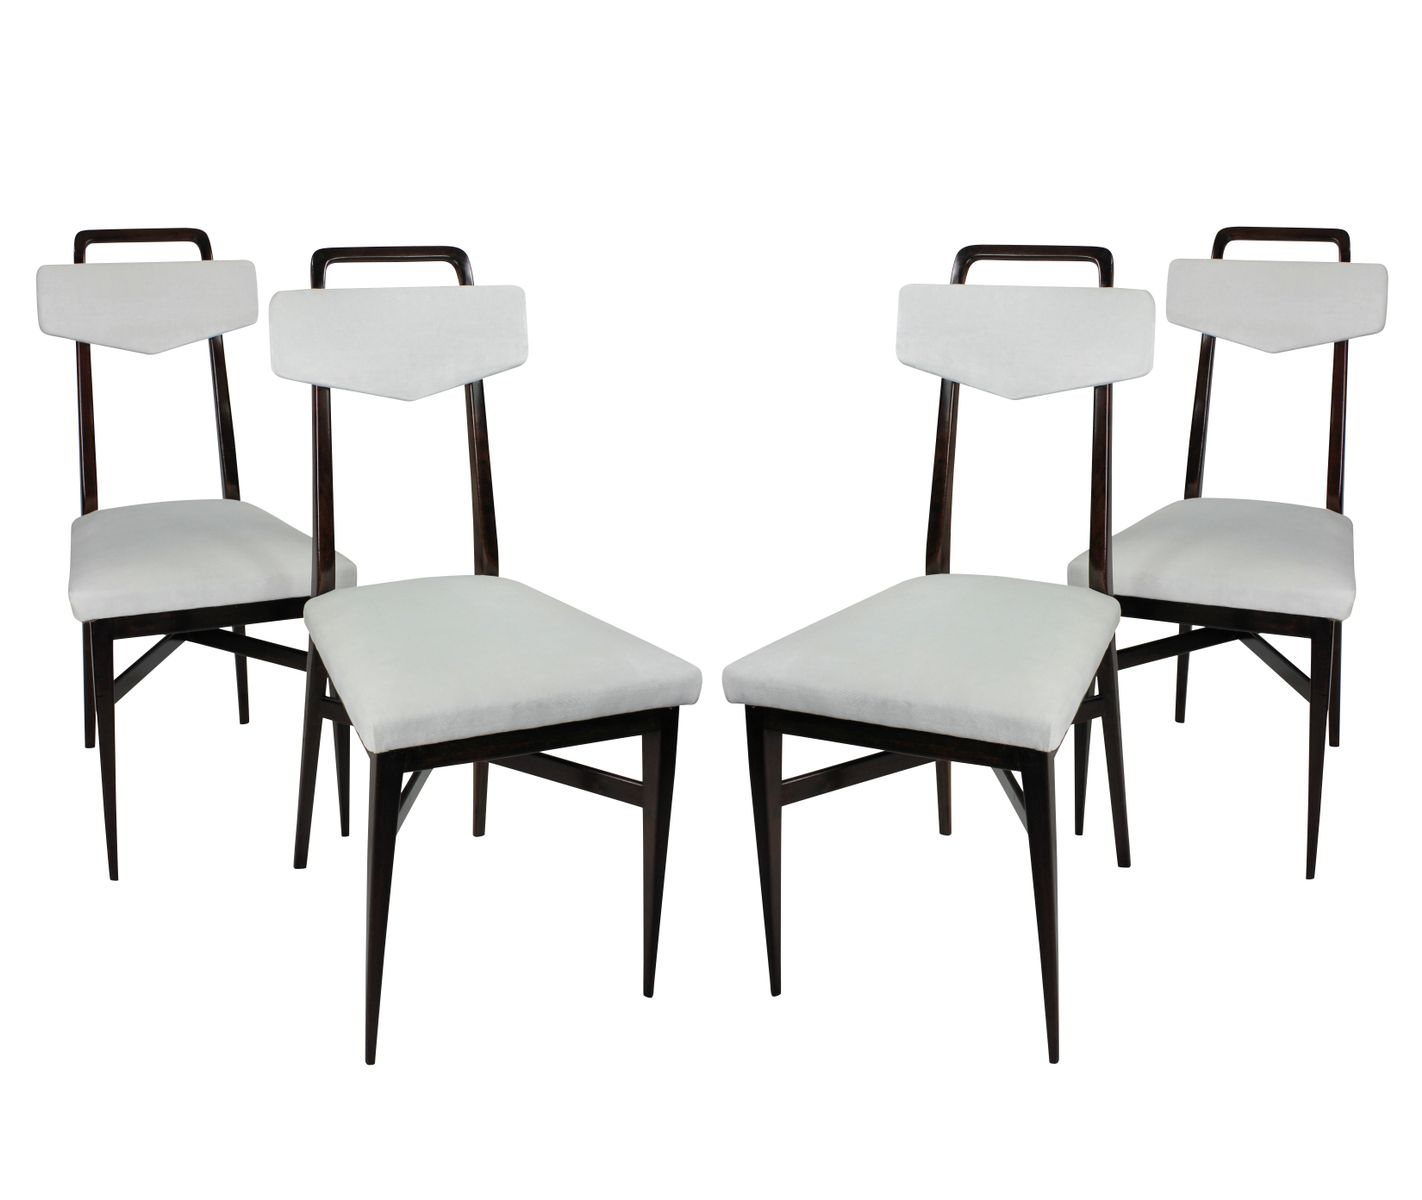 Italian Mahogany Dining Chairs 1950s Set Of 4 For Sale At Pamono